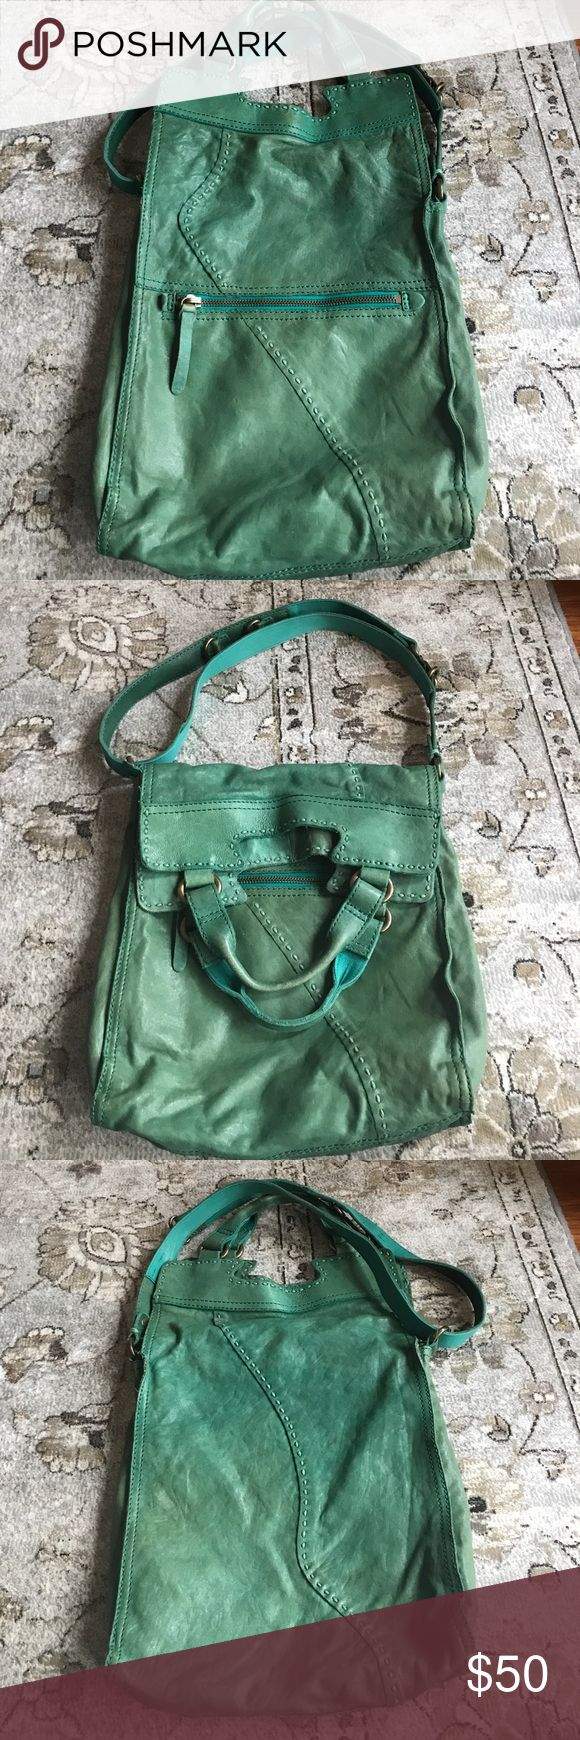 Lucky Brand purse Green Italian leather, adjustable strap, outside zipper, fold-over main closure, put over one shoulder or use as a crossbody messenger type bag Lucky Brand Bags Shoulder Bags